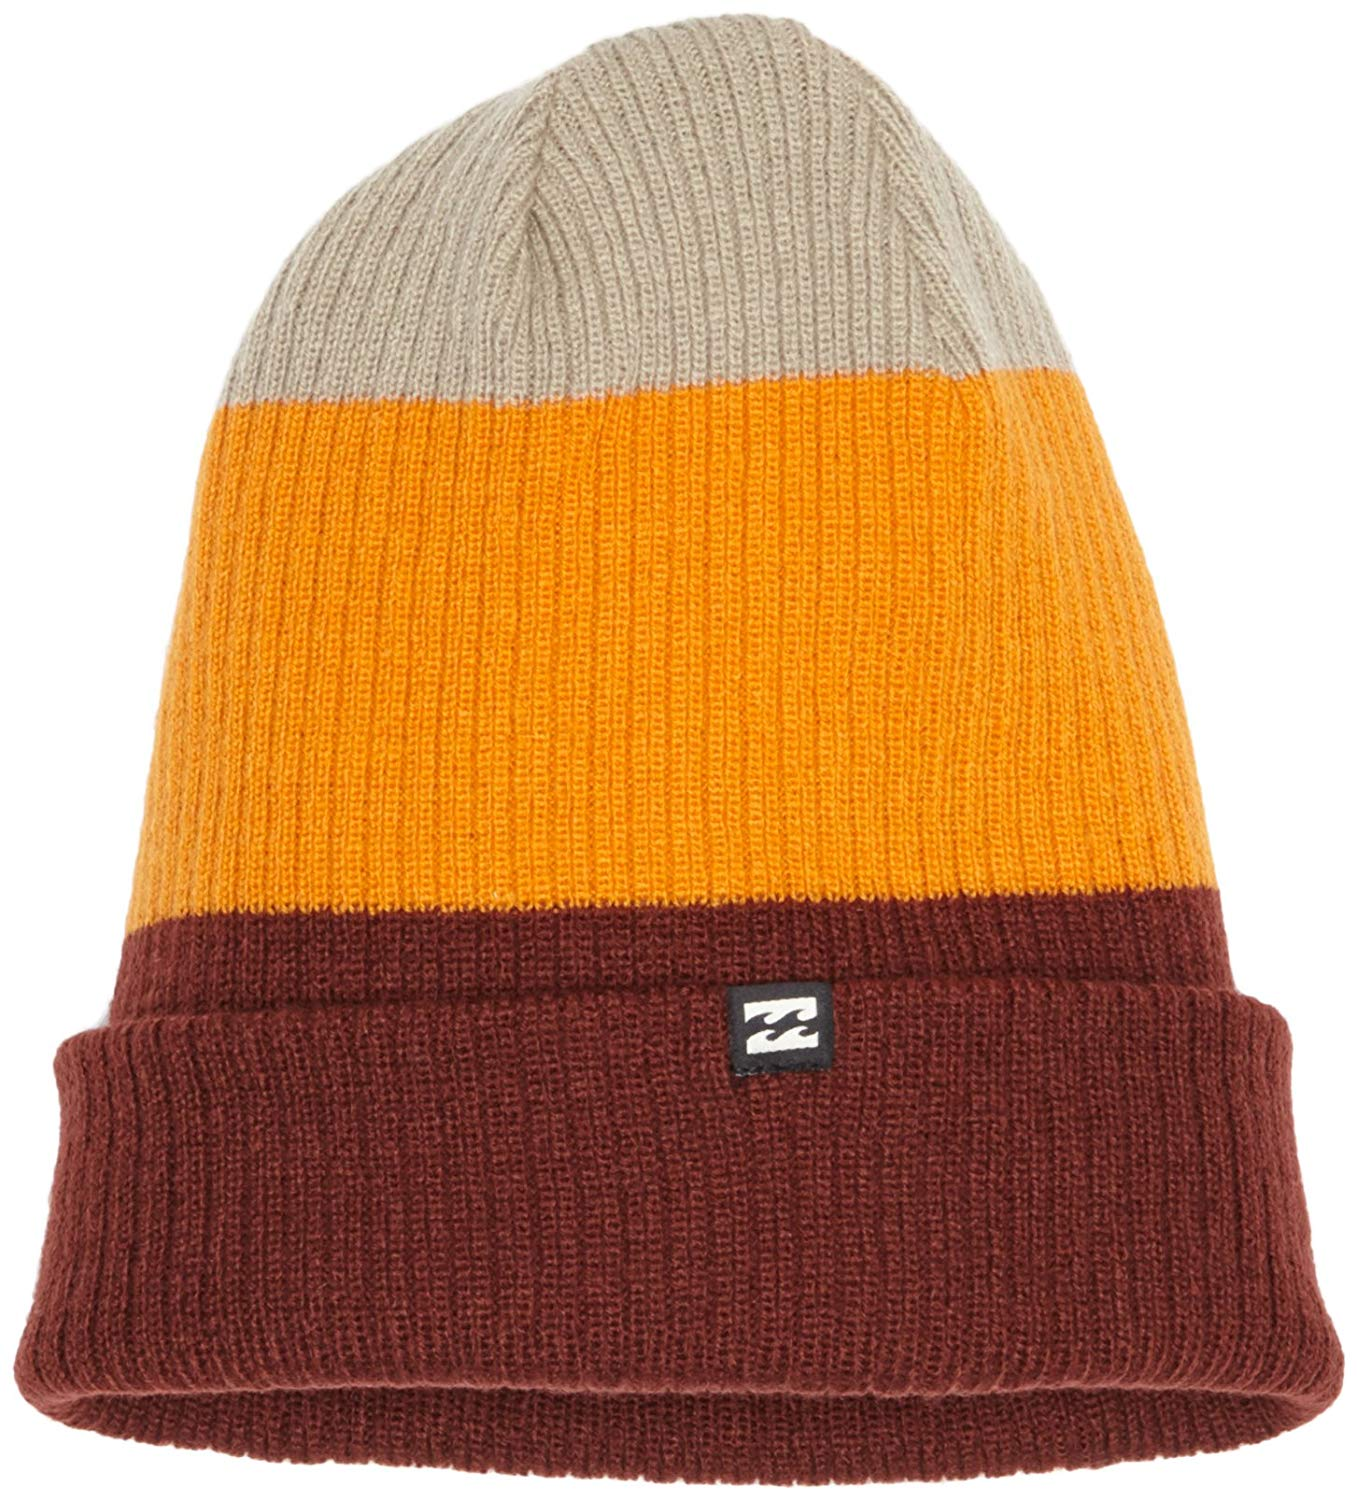 5fde1d7b1cc Get Quotations · G.S.M. Europe - Billabong Men s G.S.M. Europeâ -Â Billabong  Beanie Hat